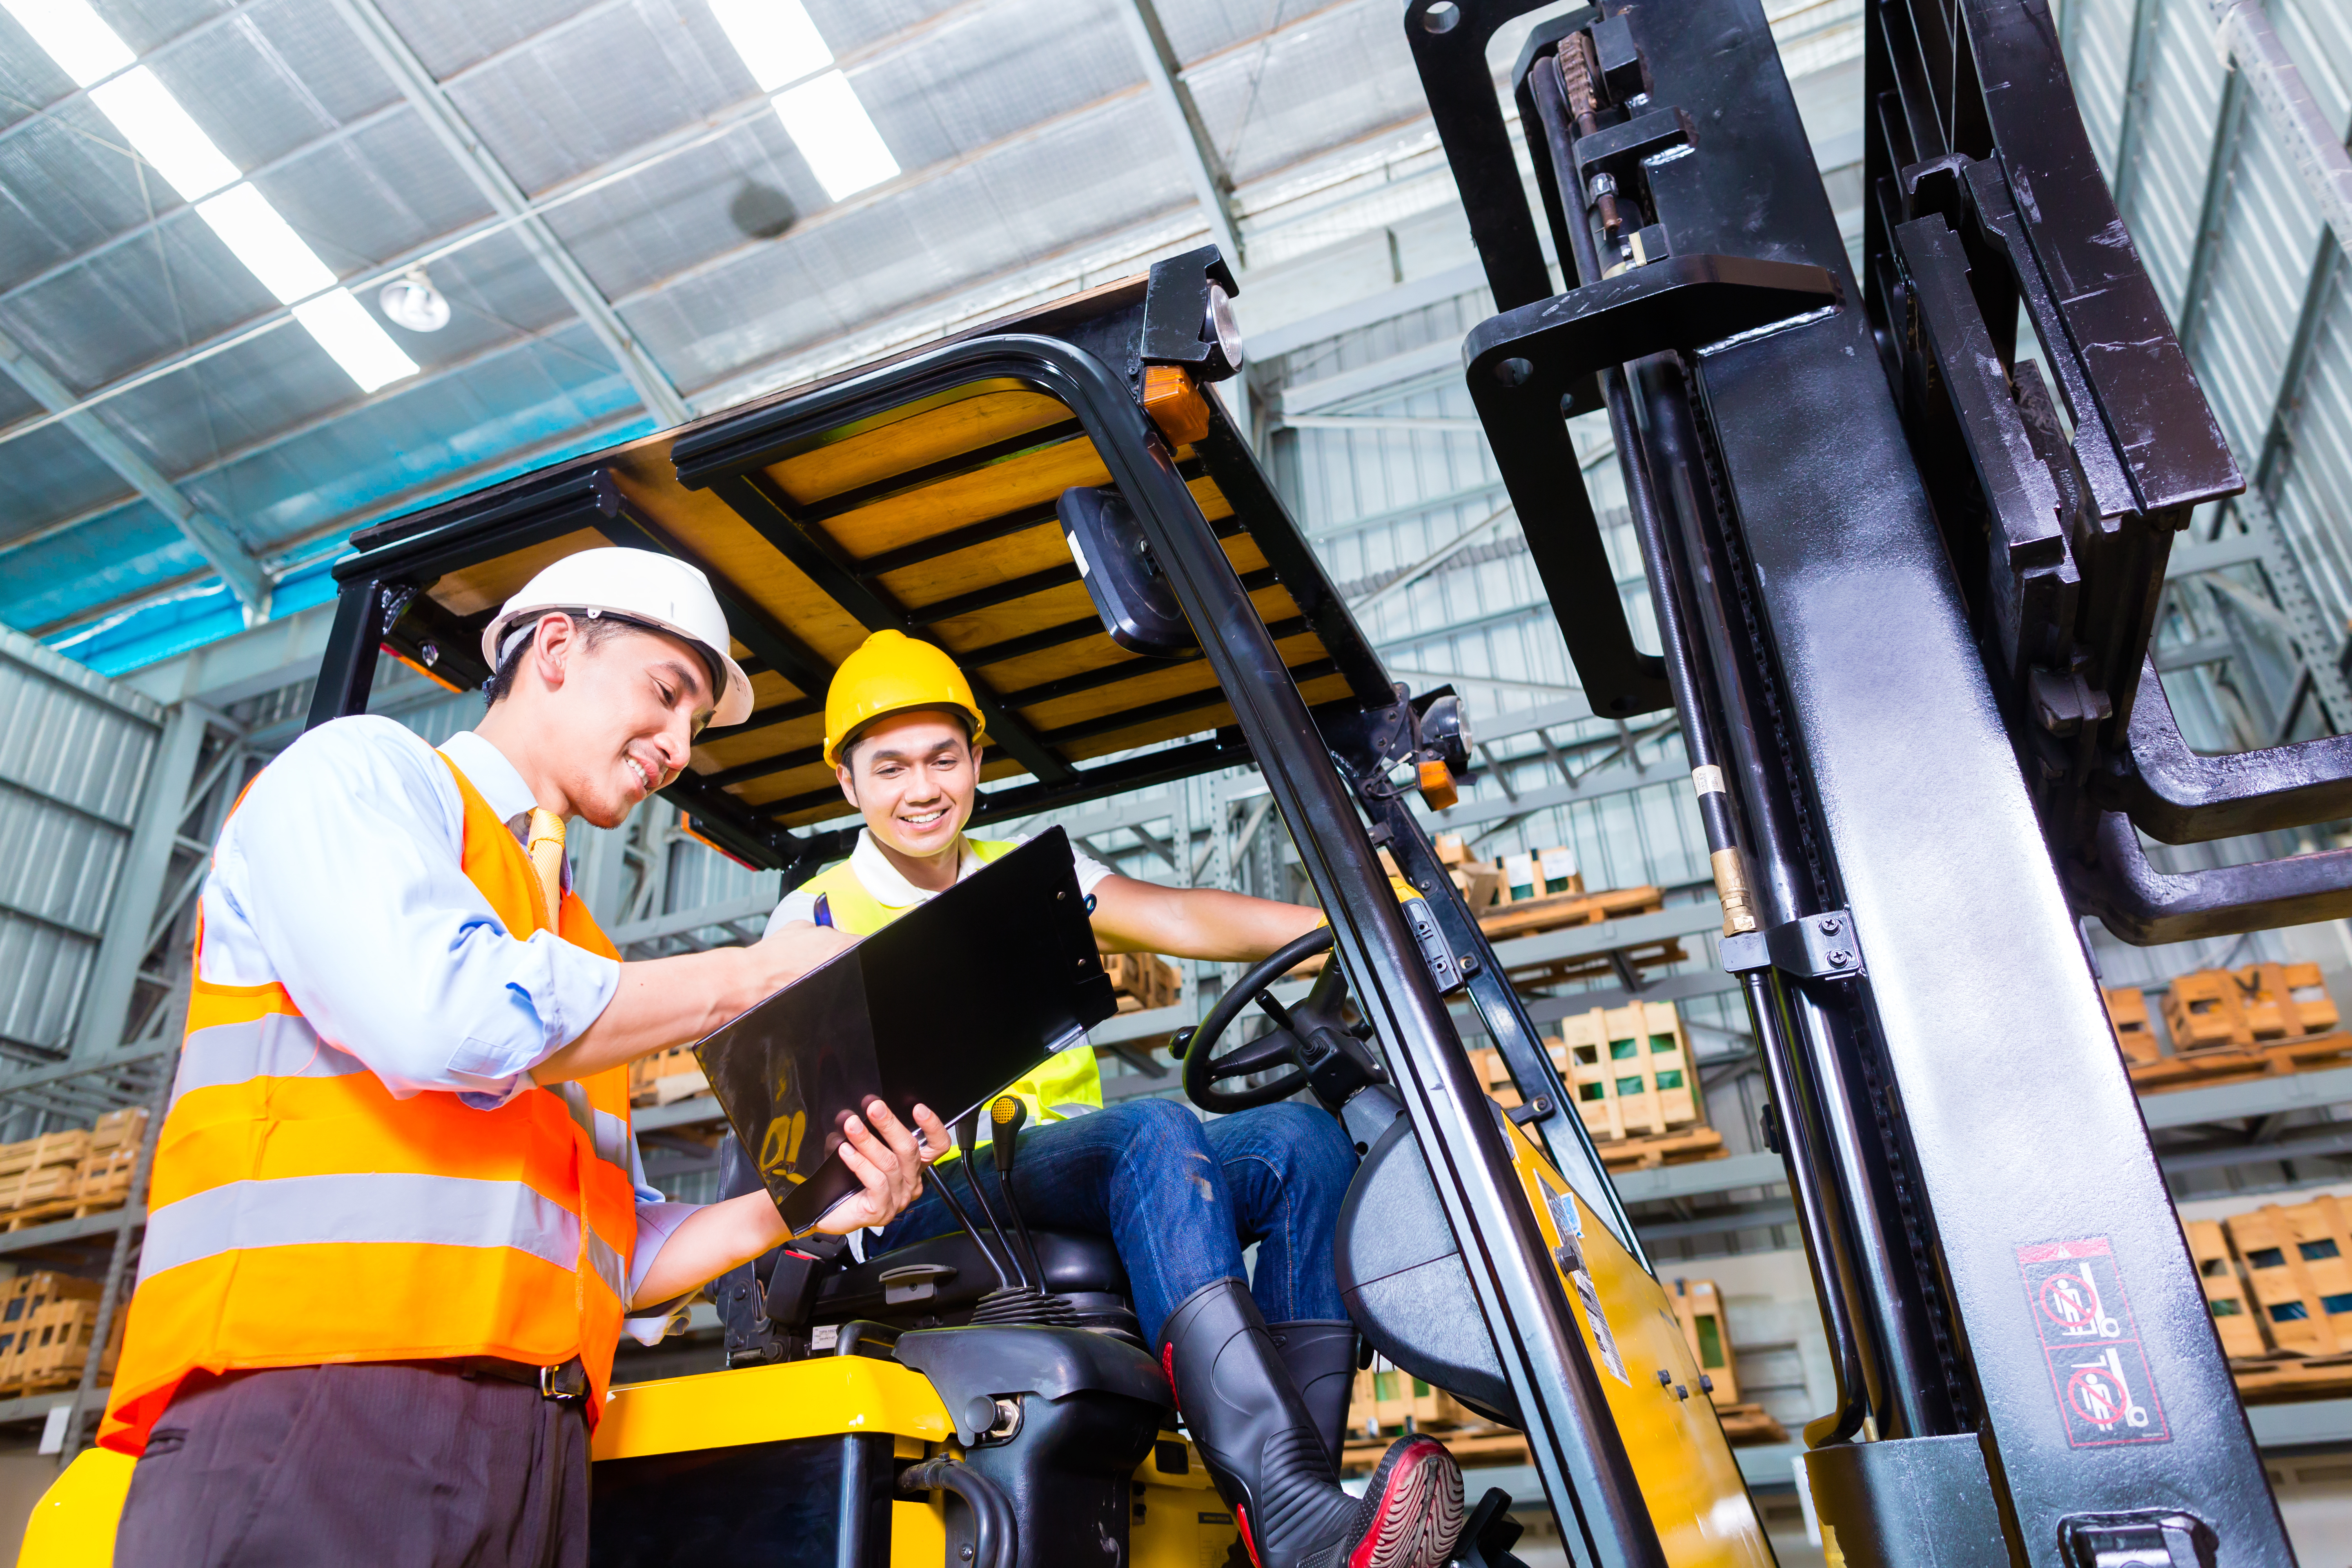 Forklift Compliance: 5 Regulations You Need to Know About Now